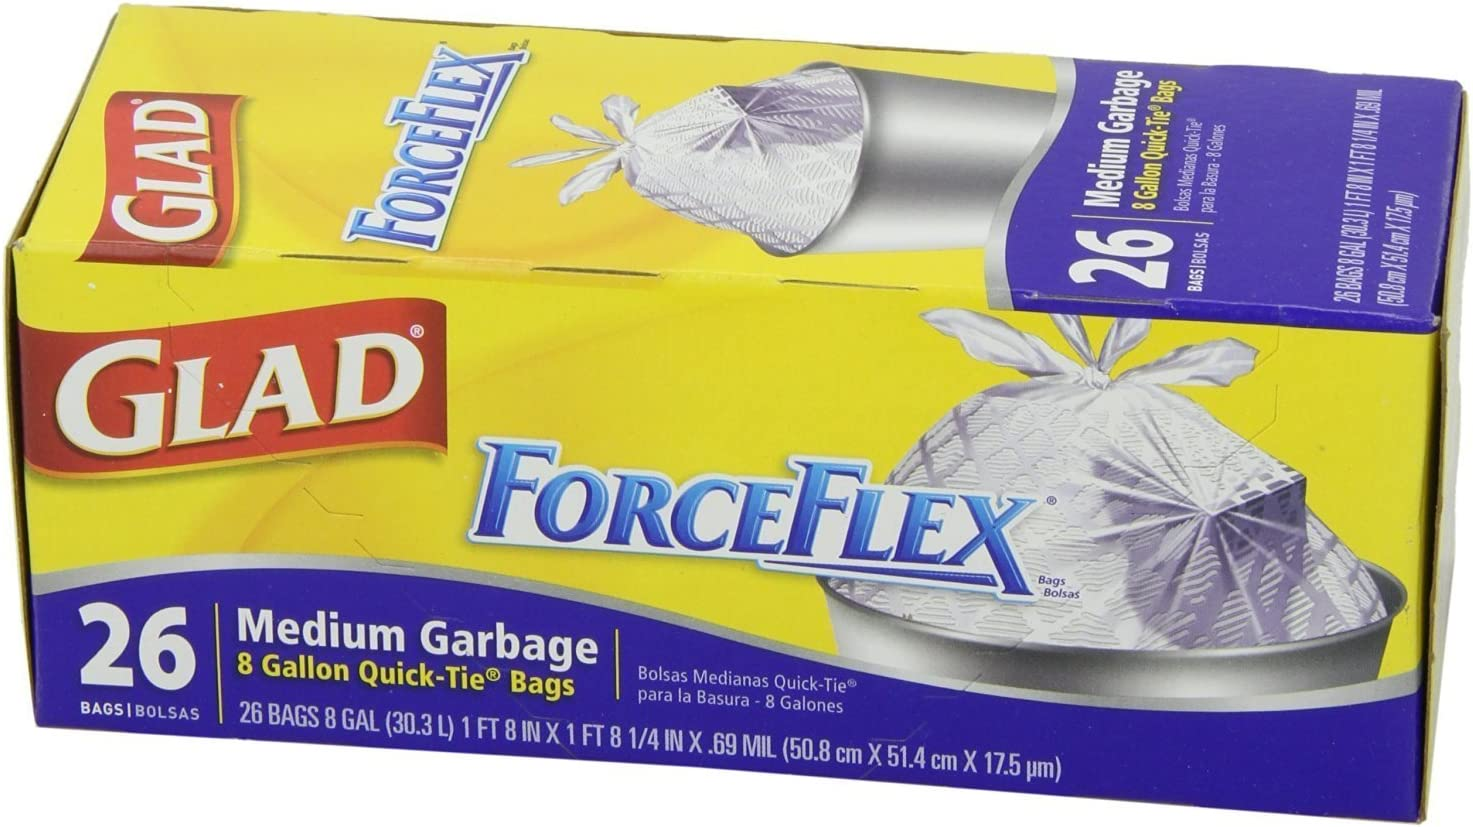 Glad 70403 Force Flex Medium Garbage Bag 8 Gallon 26 Count Pack of 2